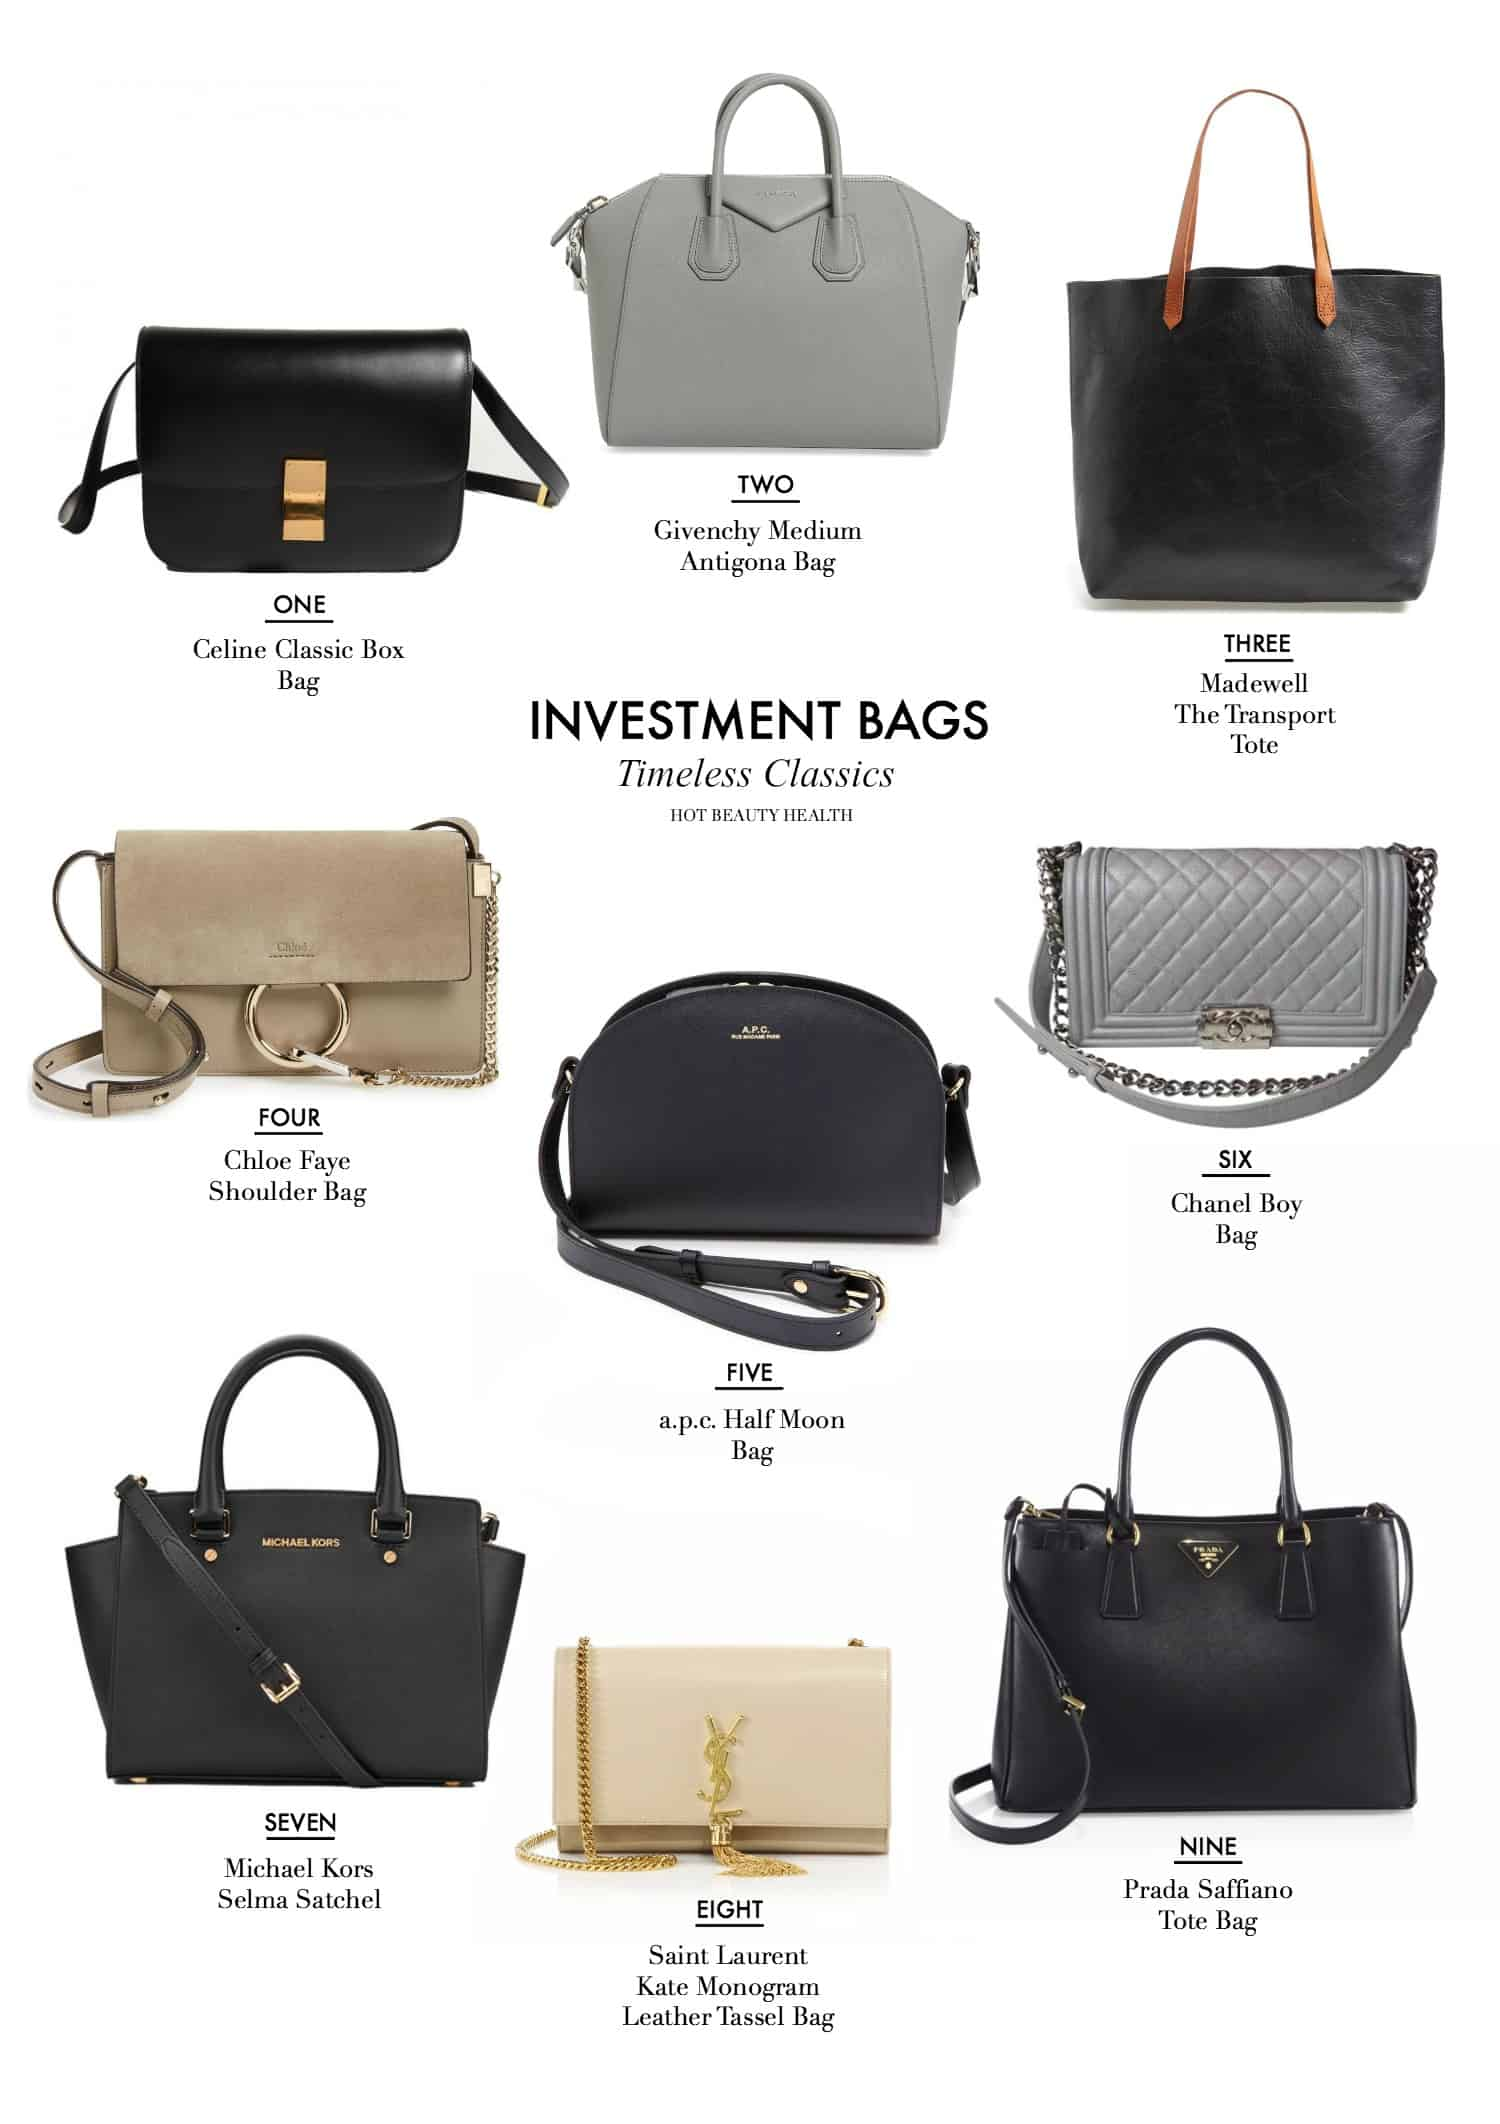 9 Classic Handbags That Are Worth The Investment